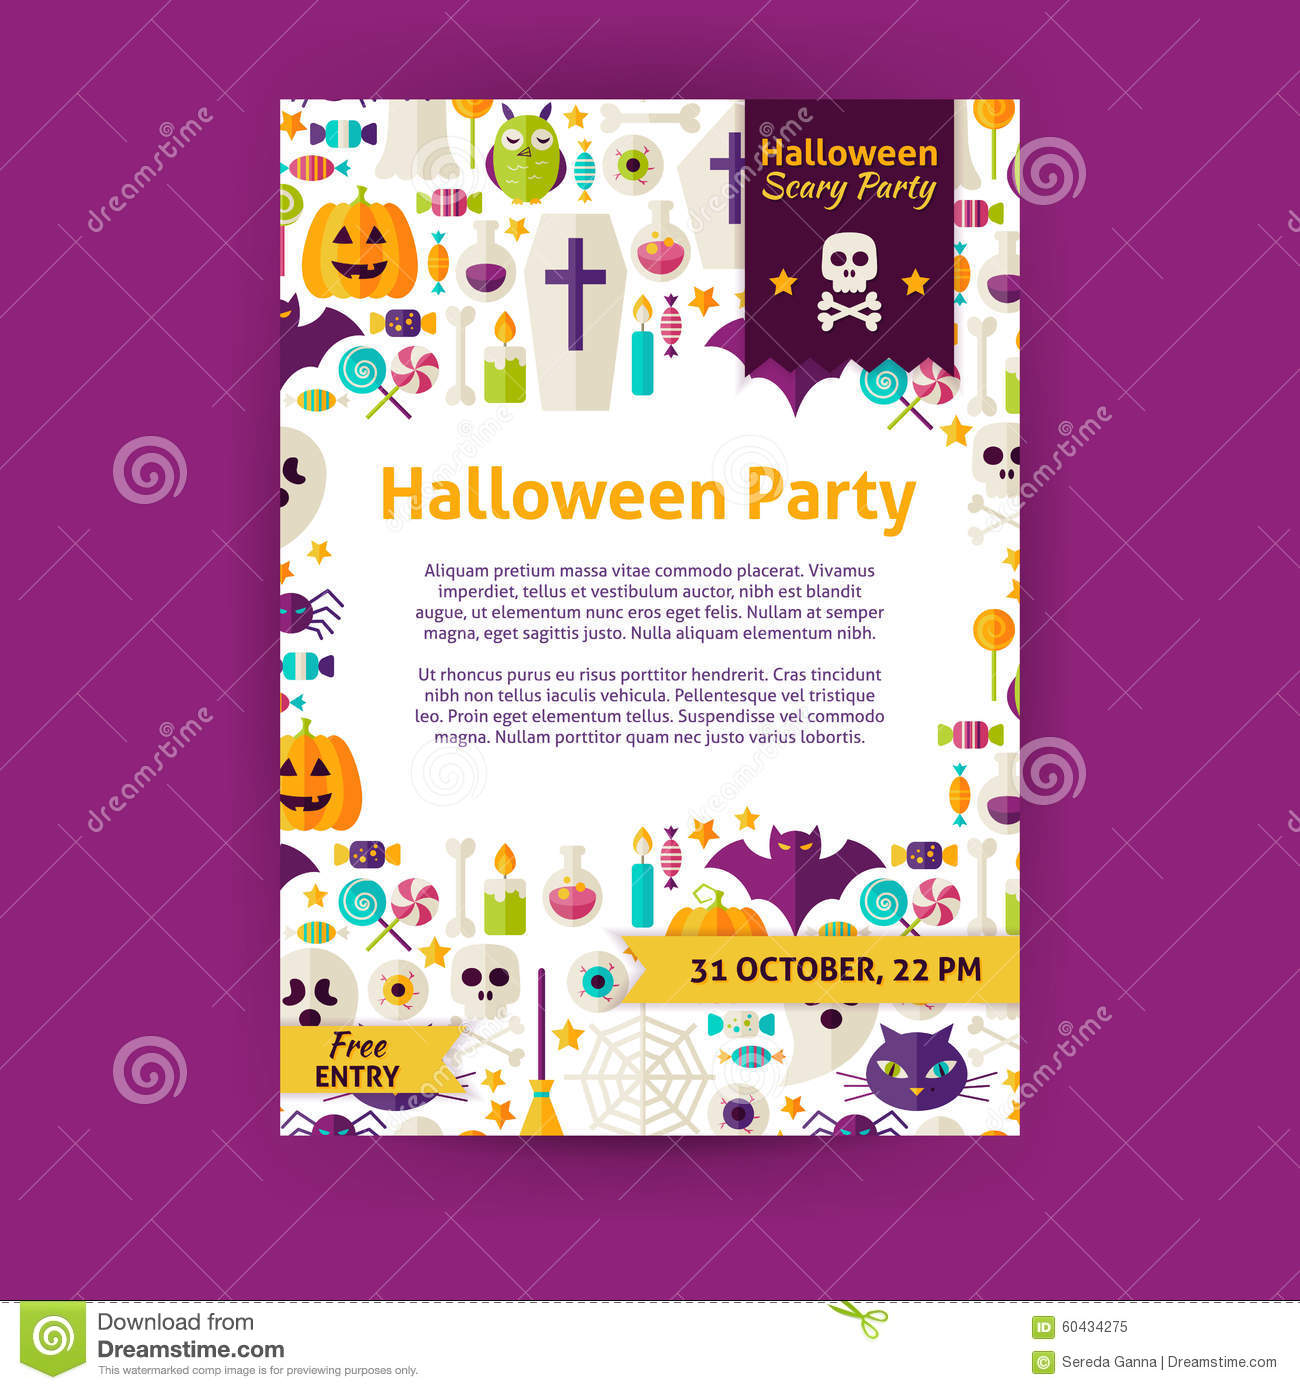 halloween party invitation template holiday stock vector image halloween party holiday vector invitation template flyer royalty stock photo